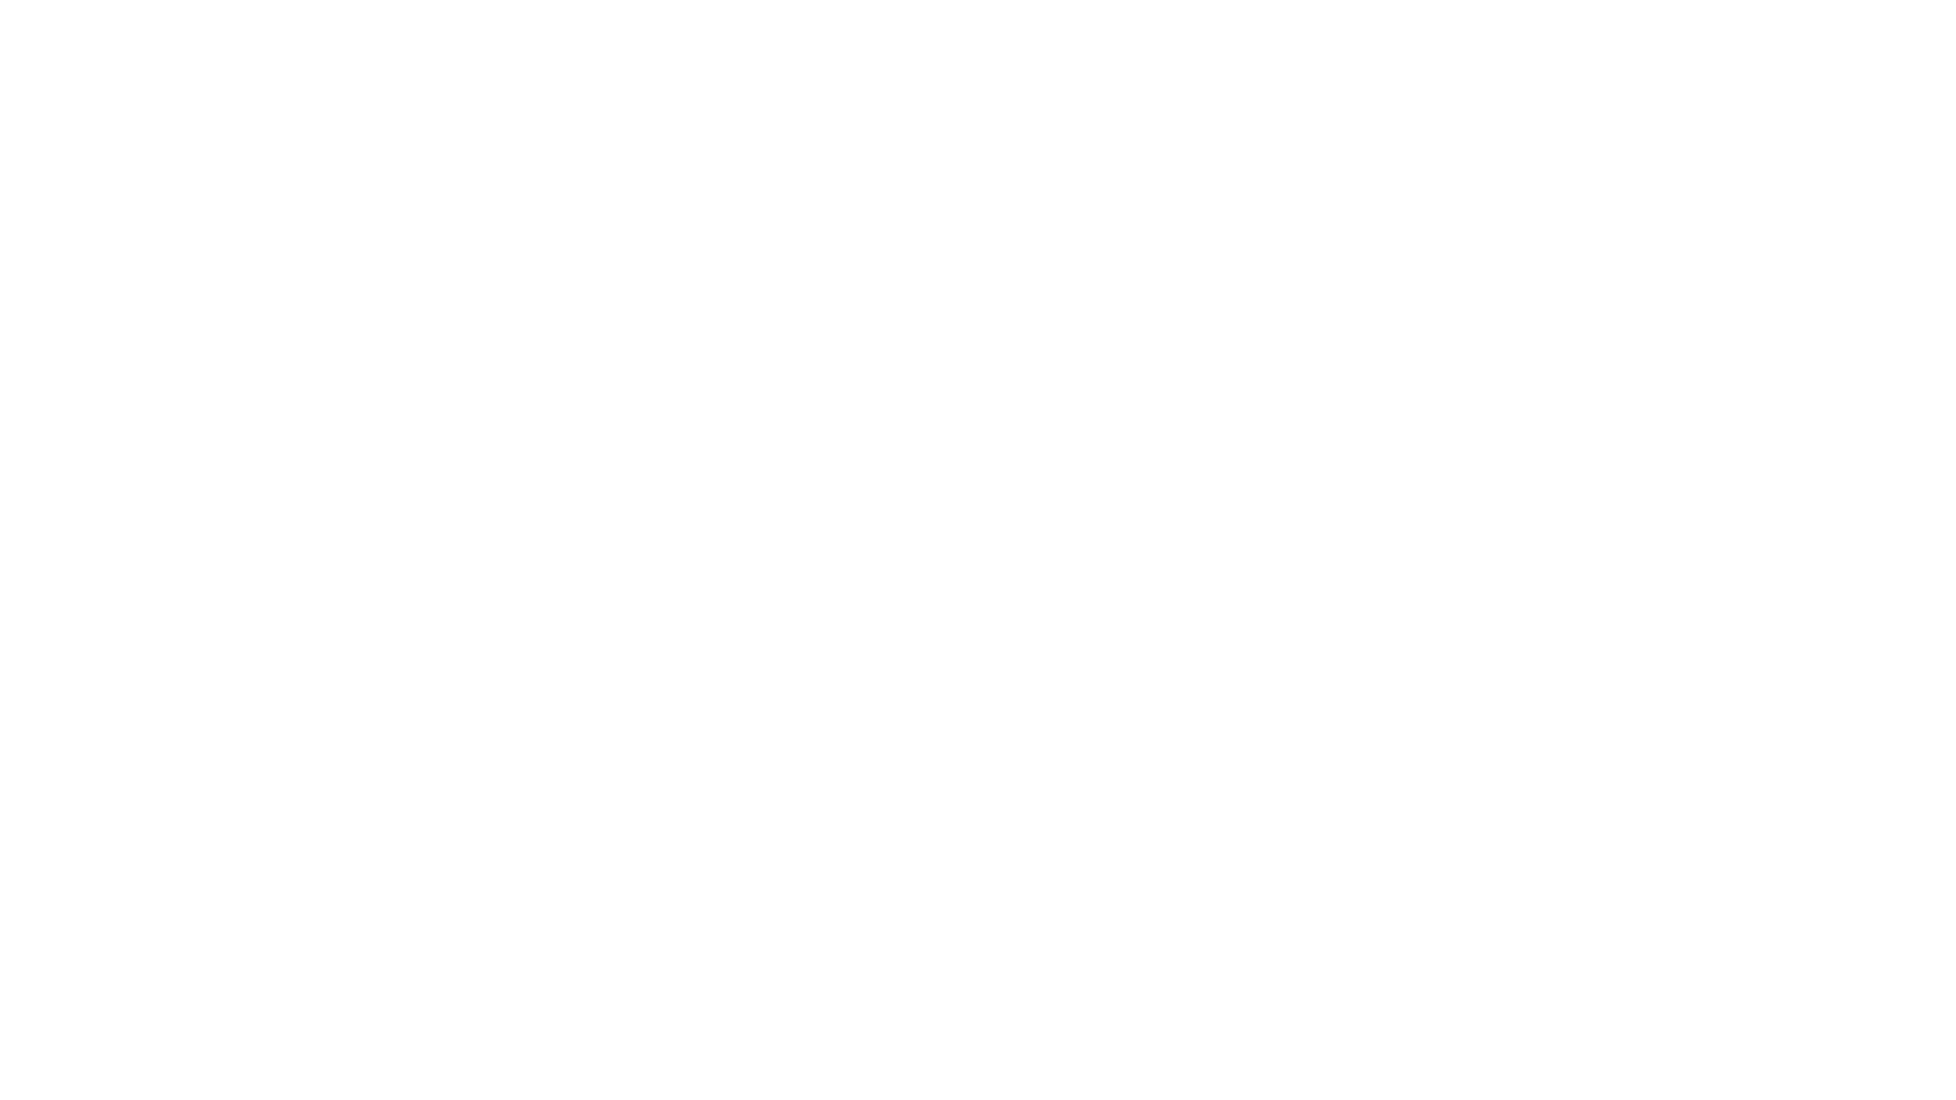 Assimilated NYC